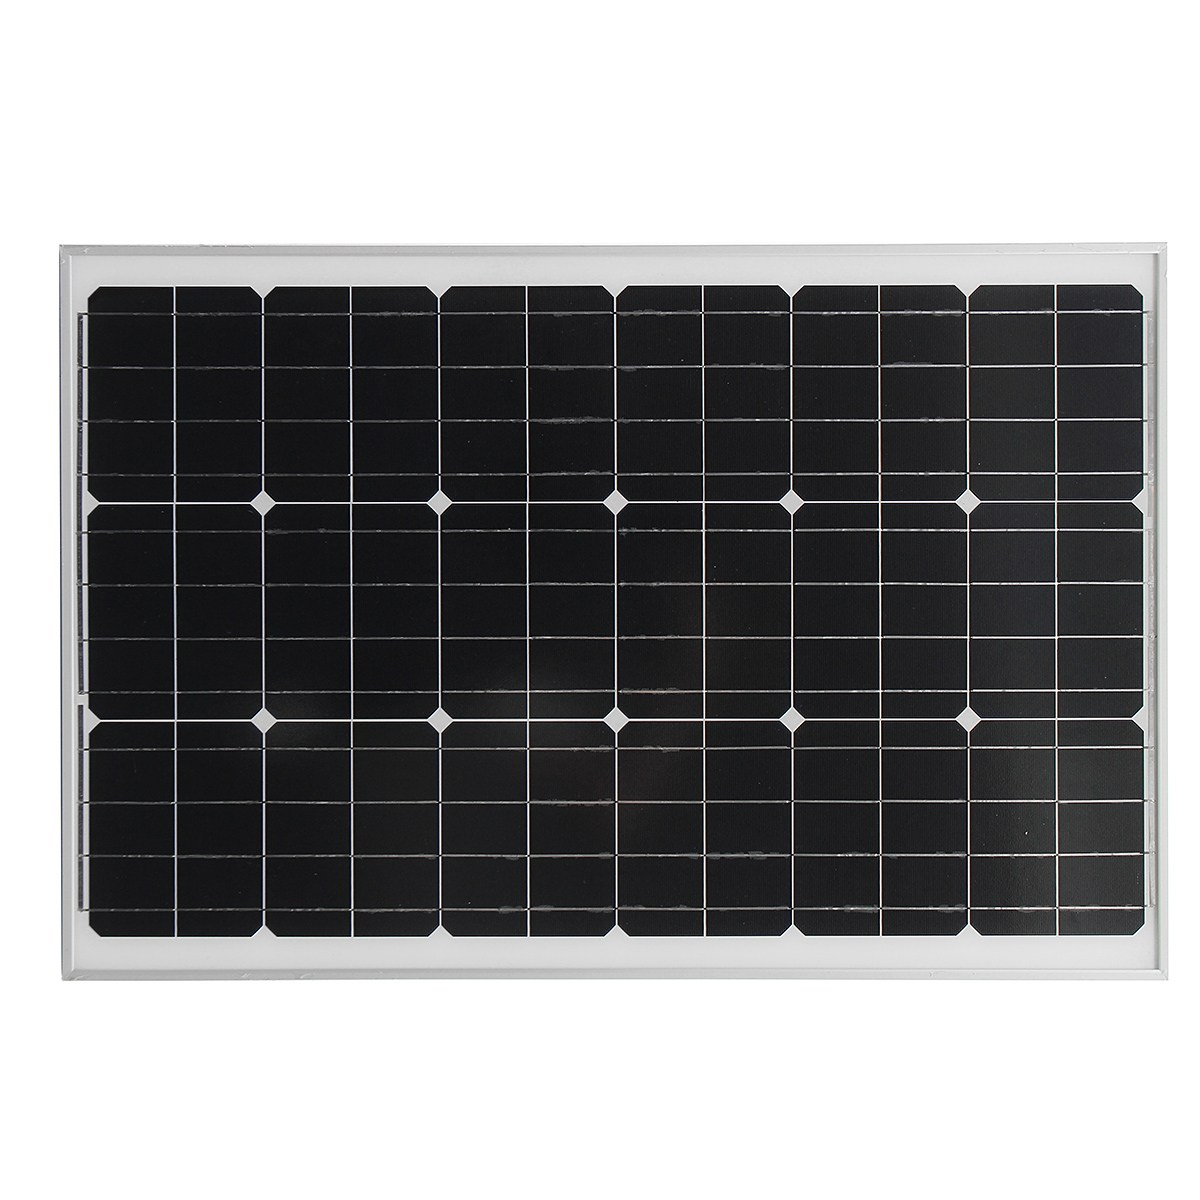 KINCO 60w 18v Solar Panel  High Conversion Efficiency Monocrystalline Silicon Solar System Supply With Glass Bearing Plate sp 36 120w 12v semi flexible monocrystalline solar panel waterproof high conversion efficiency for rv boat car 1 5m cable